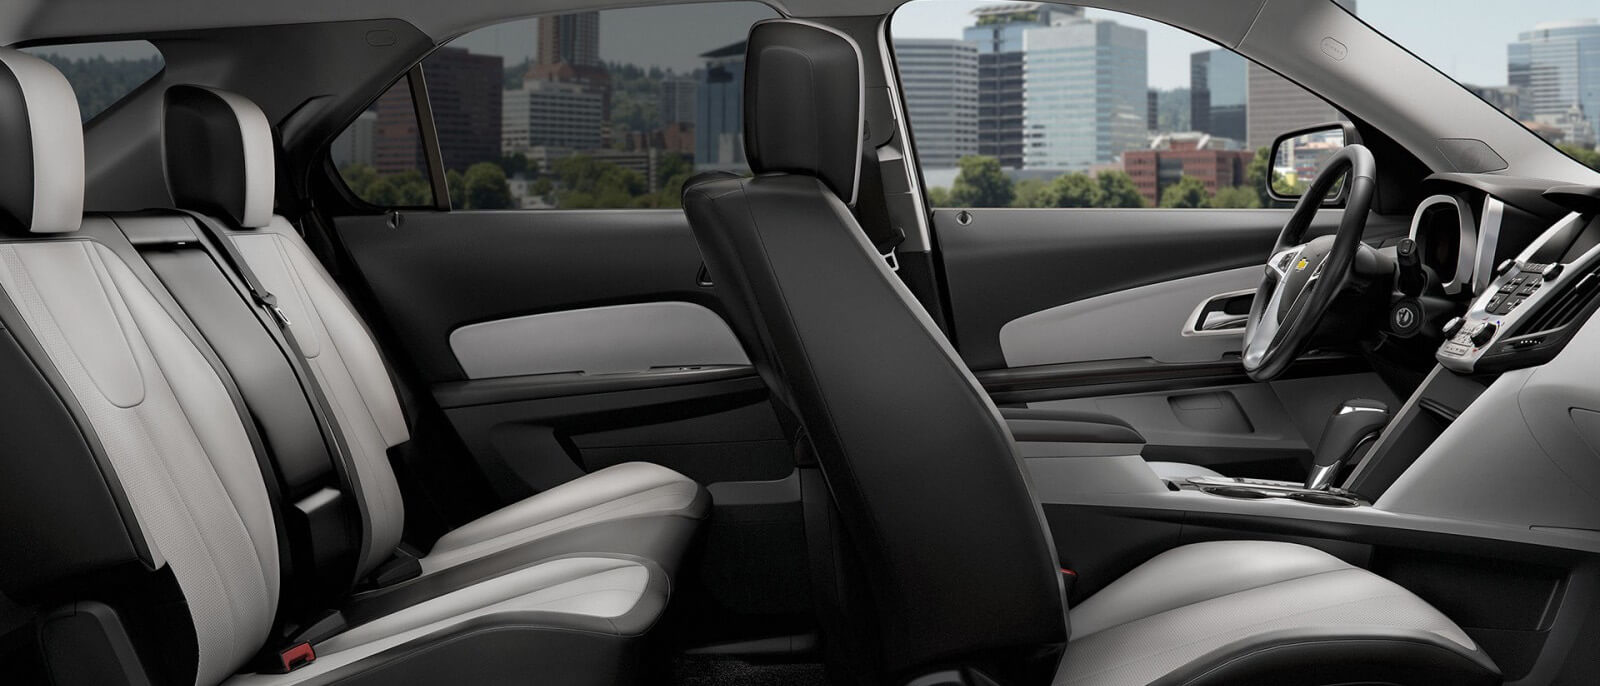 The two rows of seats are shown from the side in a 2017 Chevy Equinox.